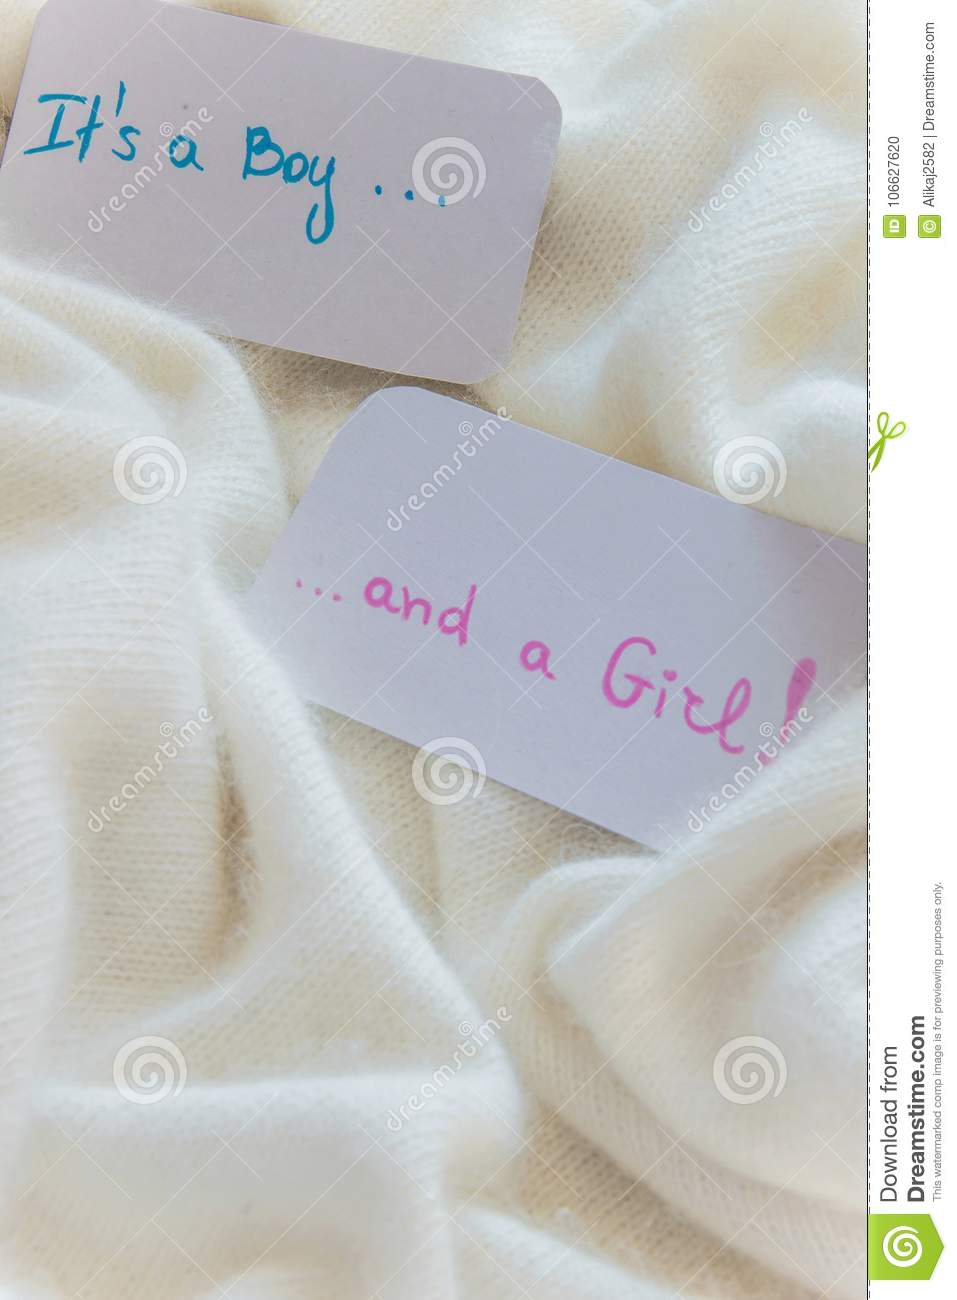 Baby shower `It`s a boy...and a girl`, announcement card on cozy warm white blanket with space for text. Twins arrivals